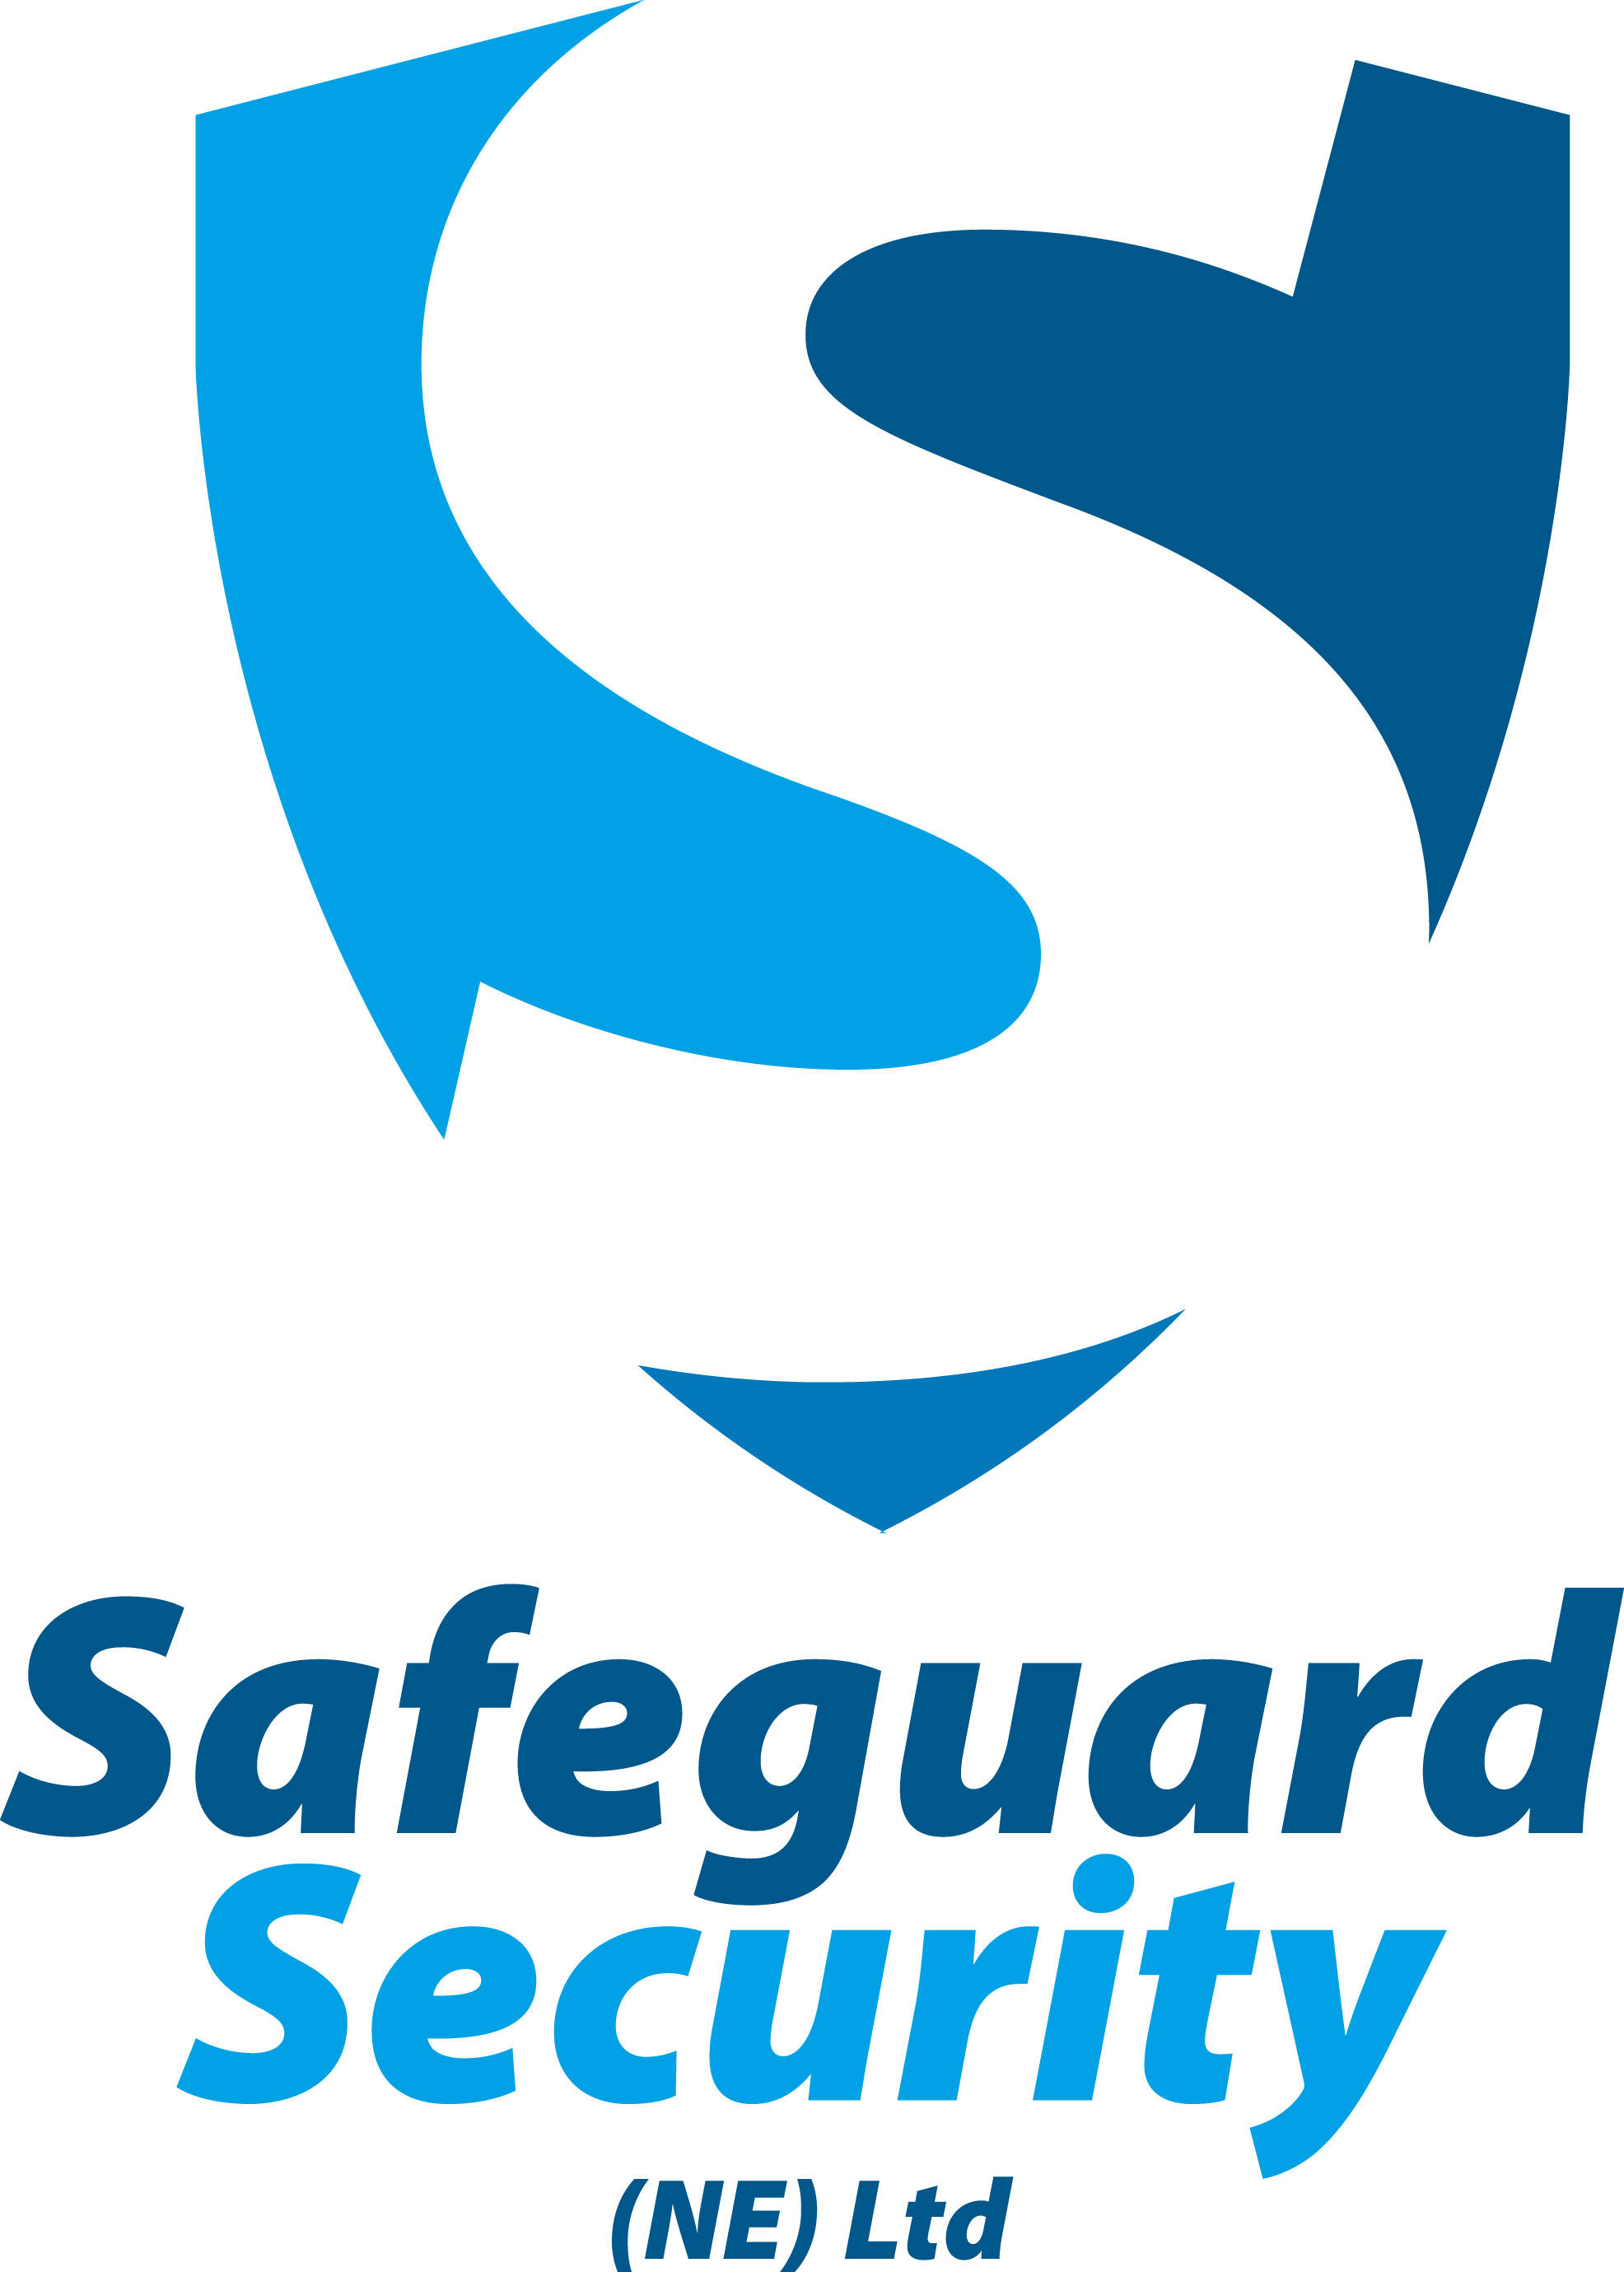 Safeguard Security NE Ltd